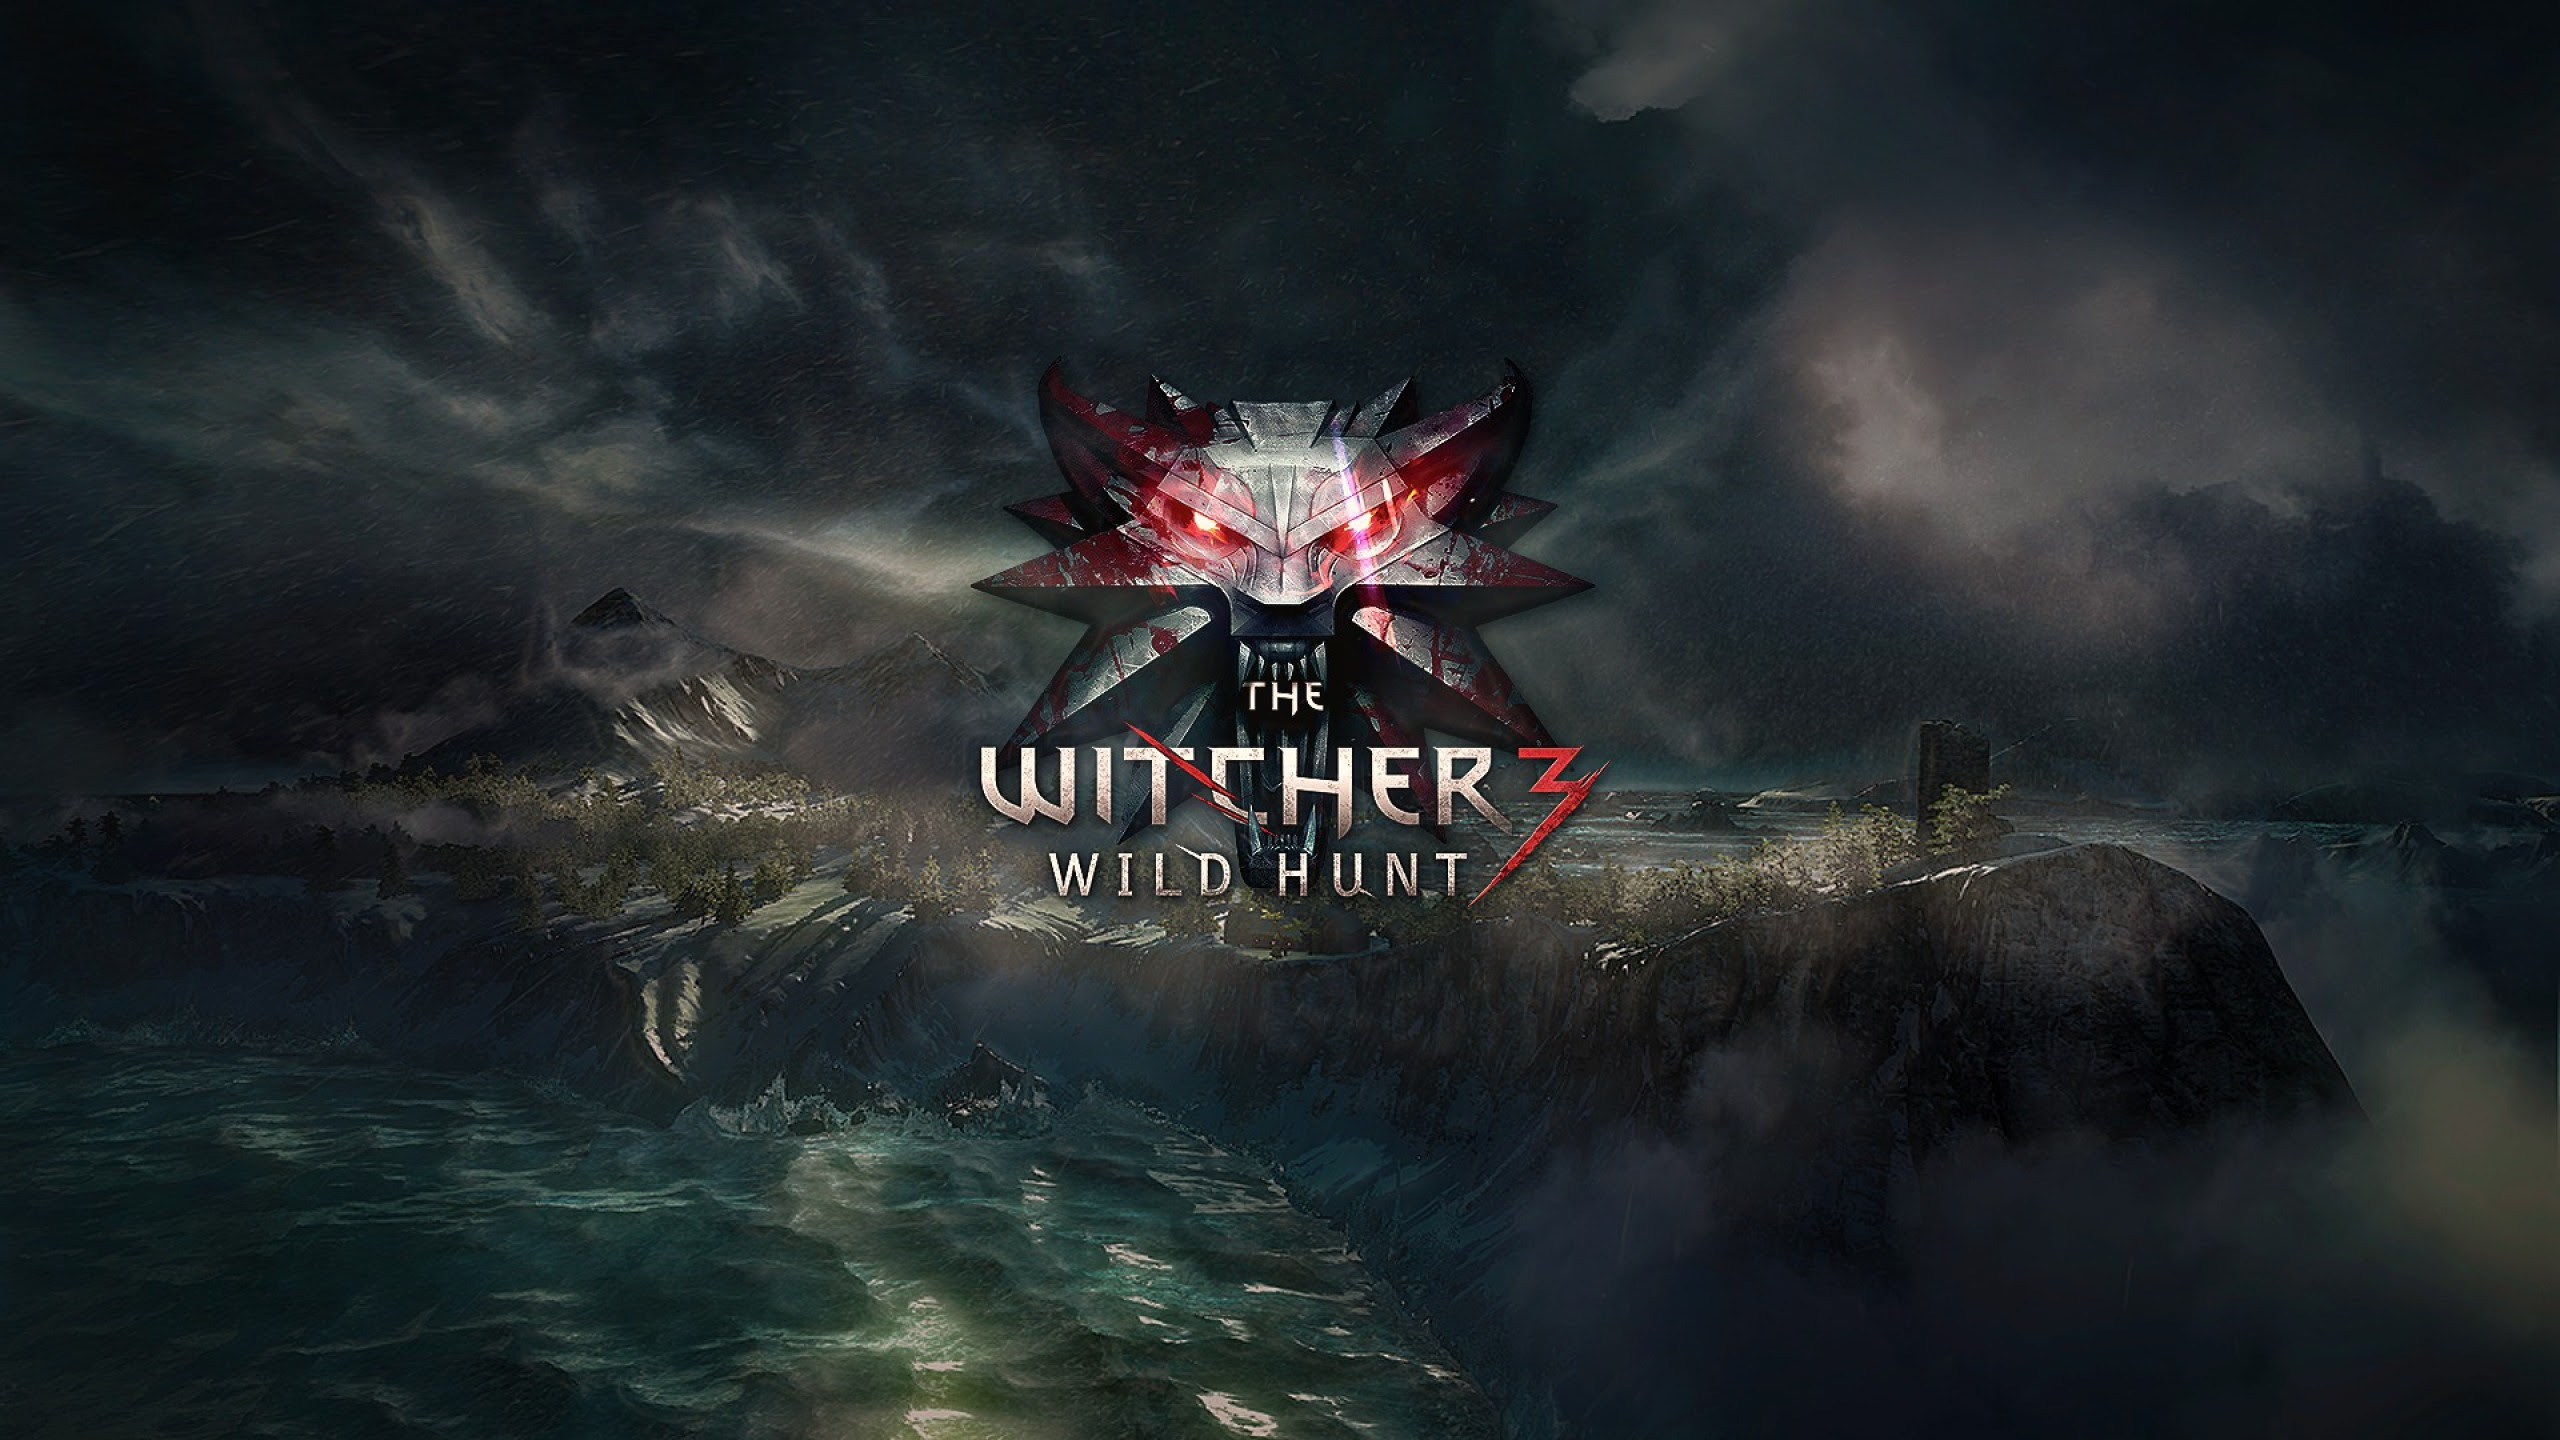 Witcher 3 Wallpaper 2560x1440 76 Images